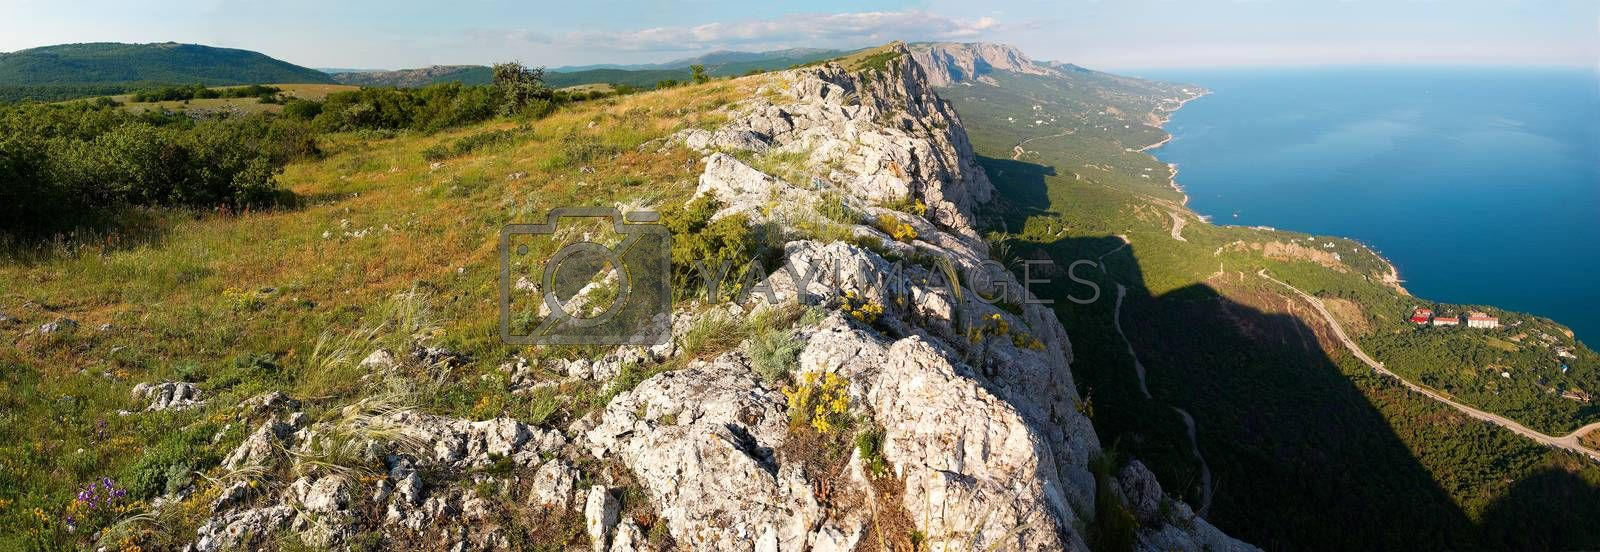 Royalty free image of View from the top of the mountain to the steep. Wide-angle panor by vapi